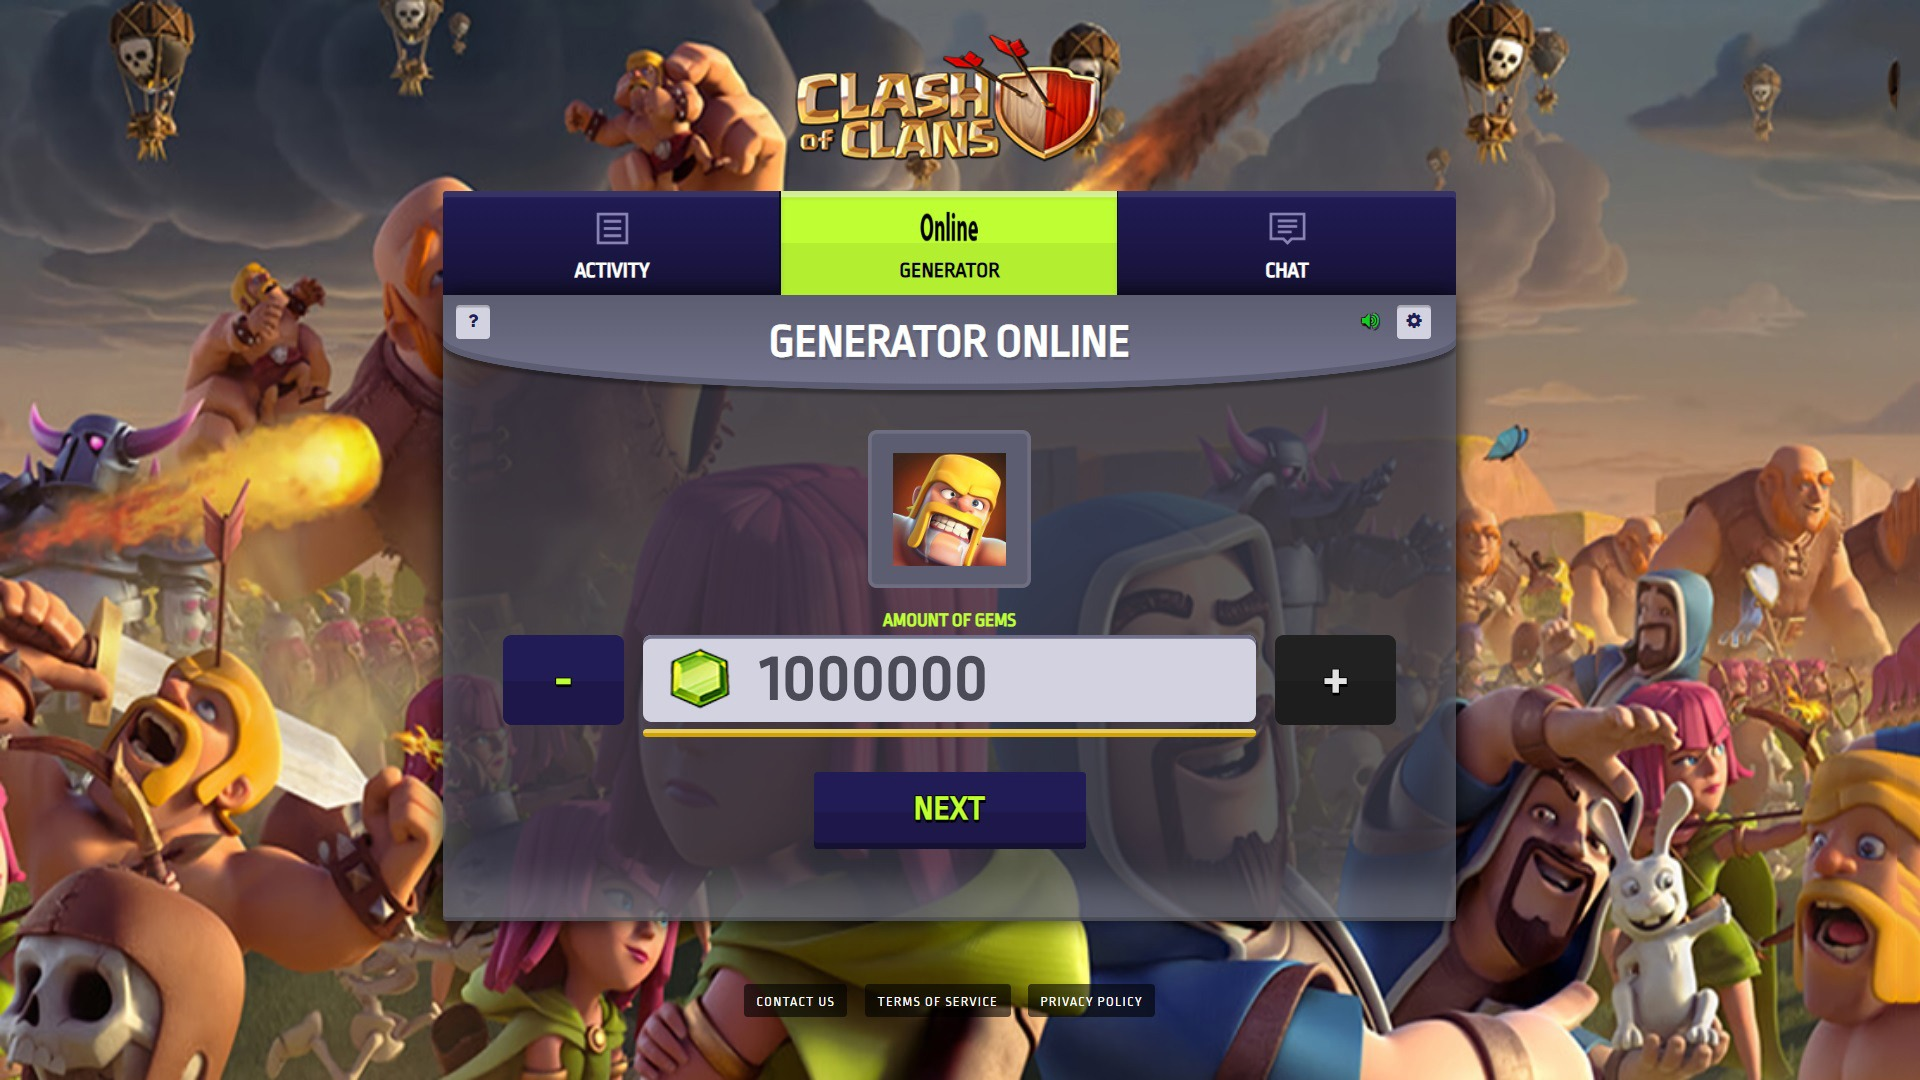 Clash Of Clans Hacks And Mods: Facts You Must Know!